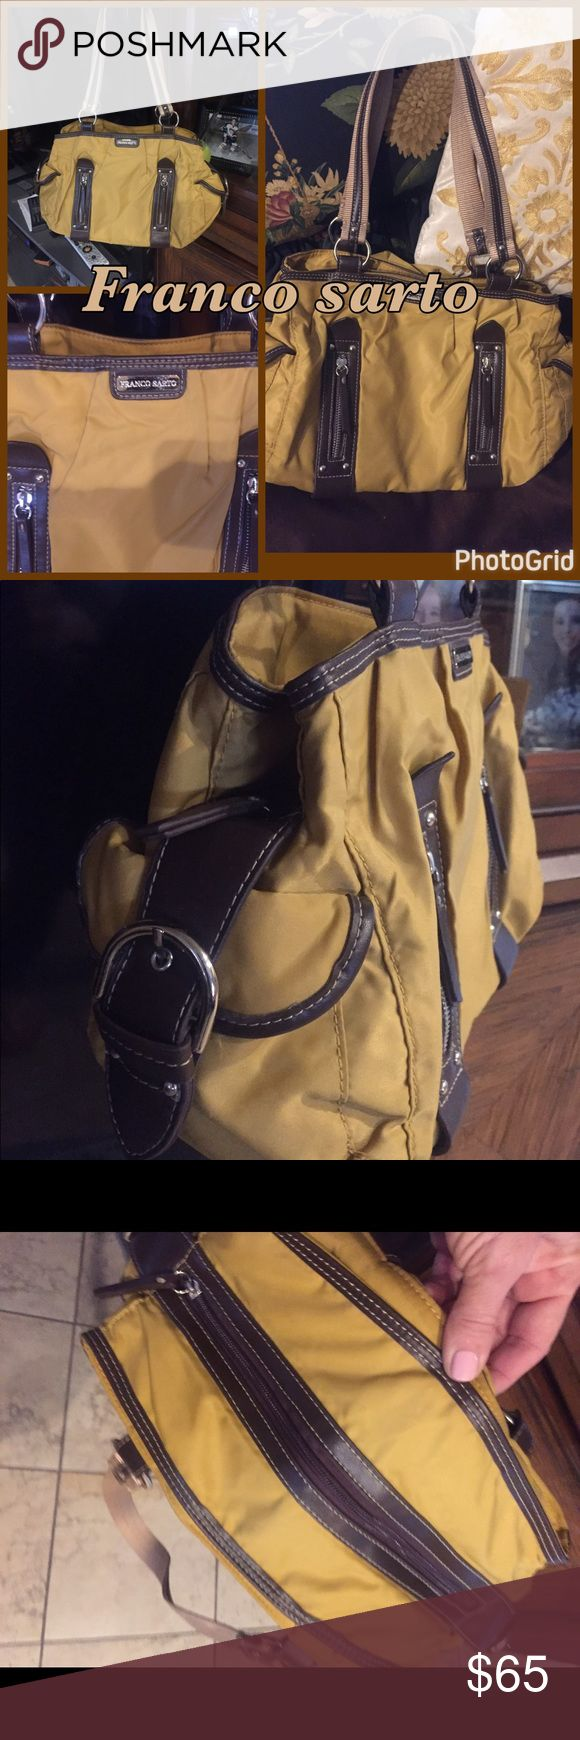 Franco Sarto handbag! Mustard yellow with deep brown leather shouder bag with multiple compartments! This was a find I NEVER USED! Looks and really is NEW, WOT💕no wear or tear ANYWHERE...;) Franco Sarto Bags Shoulder Bags